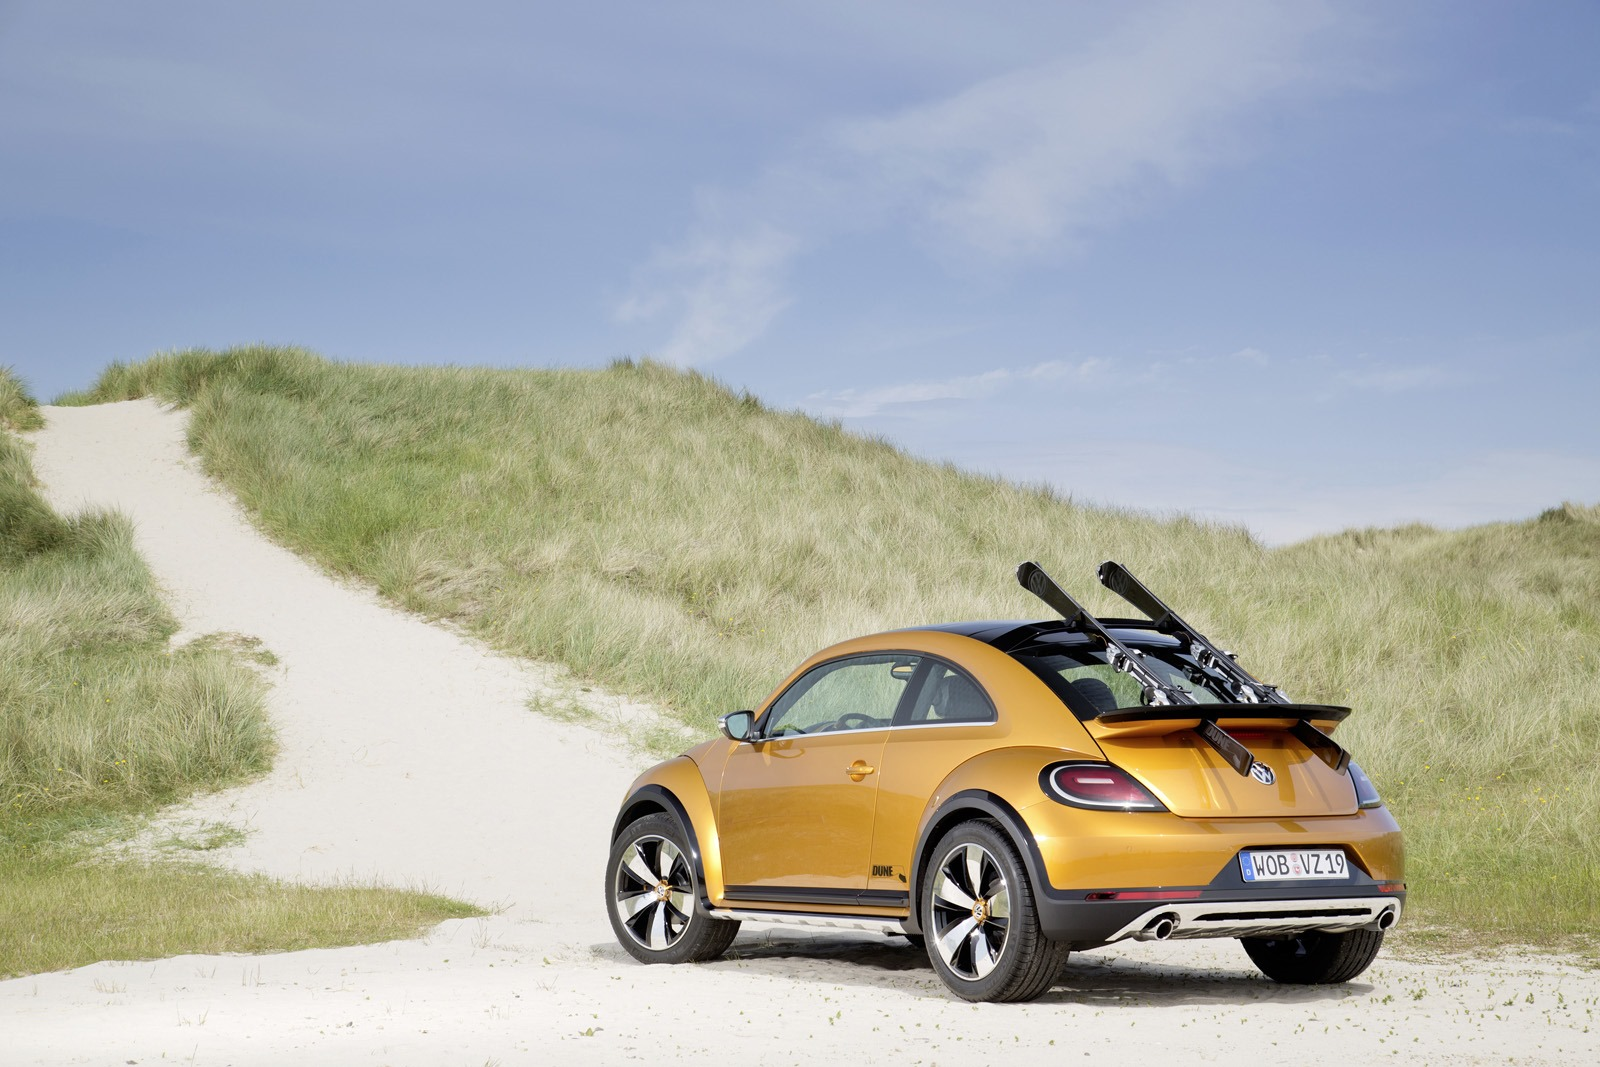 Vw Beetle Dune Concept Takes To Beach To Show Its